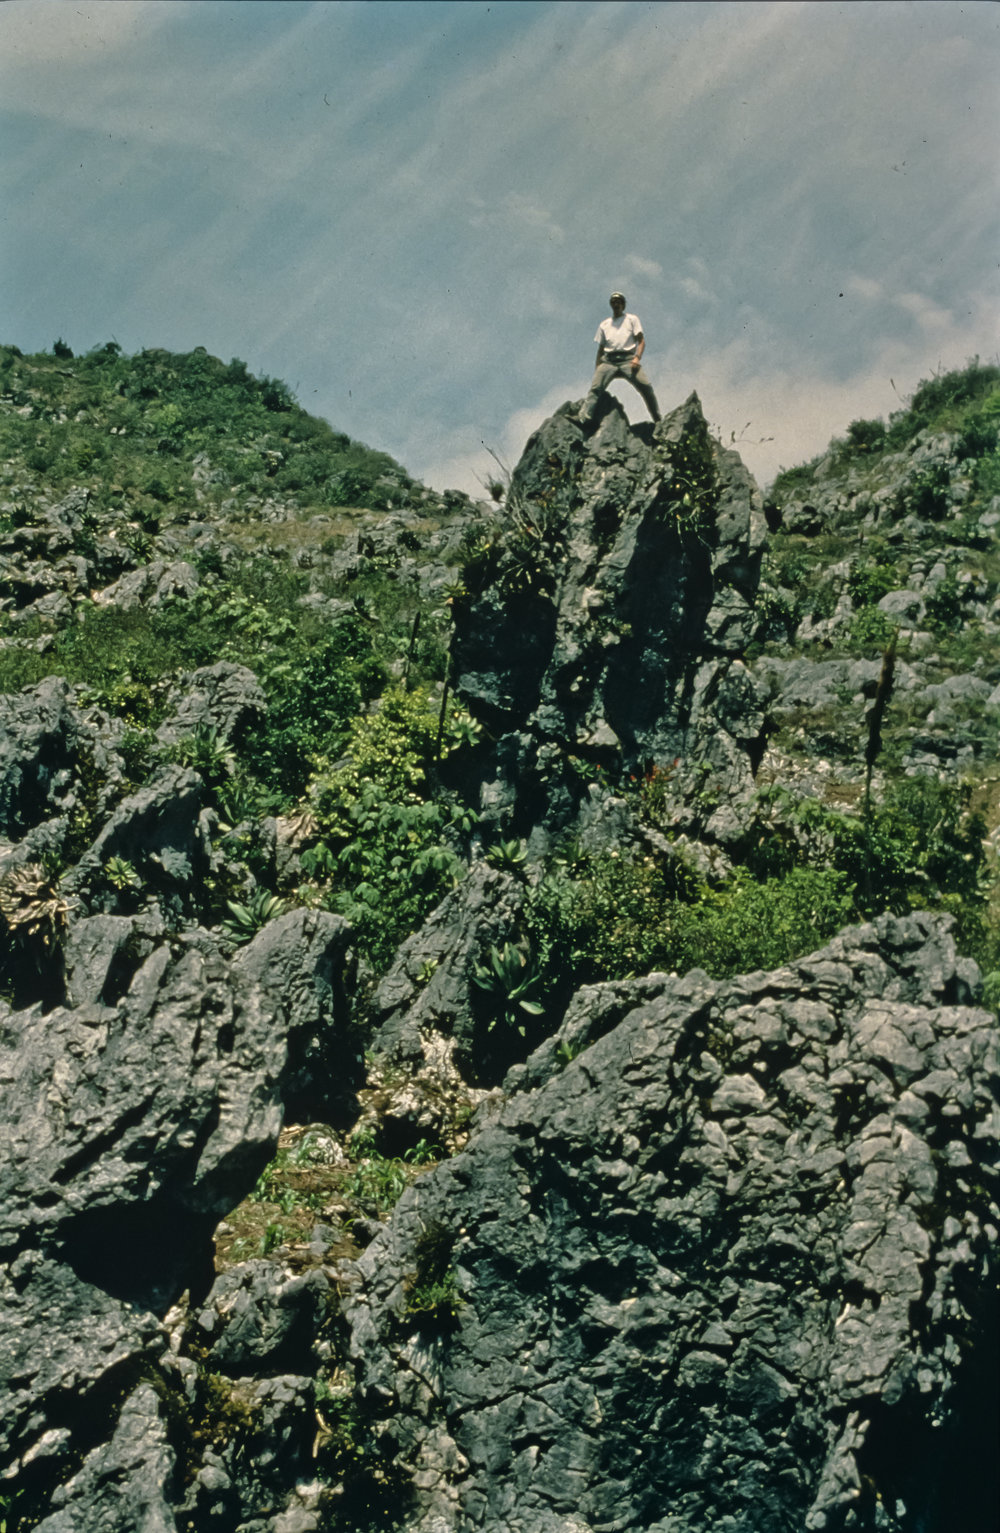 Bill Stone stands atop a spectacular karst pinnacle, one of many in the sinkholes between basecamp at the village of San Agustin Zaragoza and the southern rim of the Huautla Plateau. Photo by U. S. Deep Caving Team/Bill Stone.